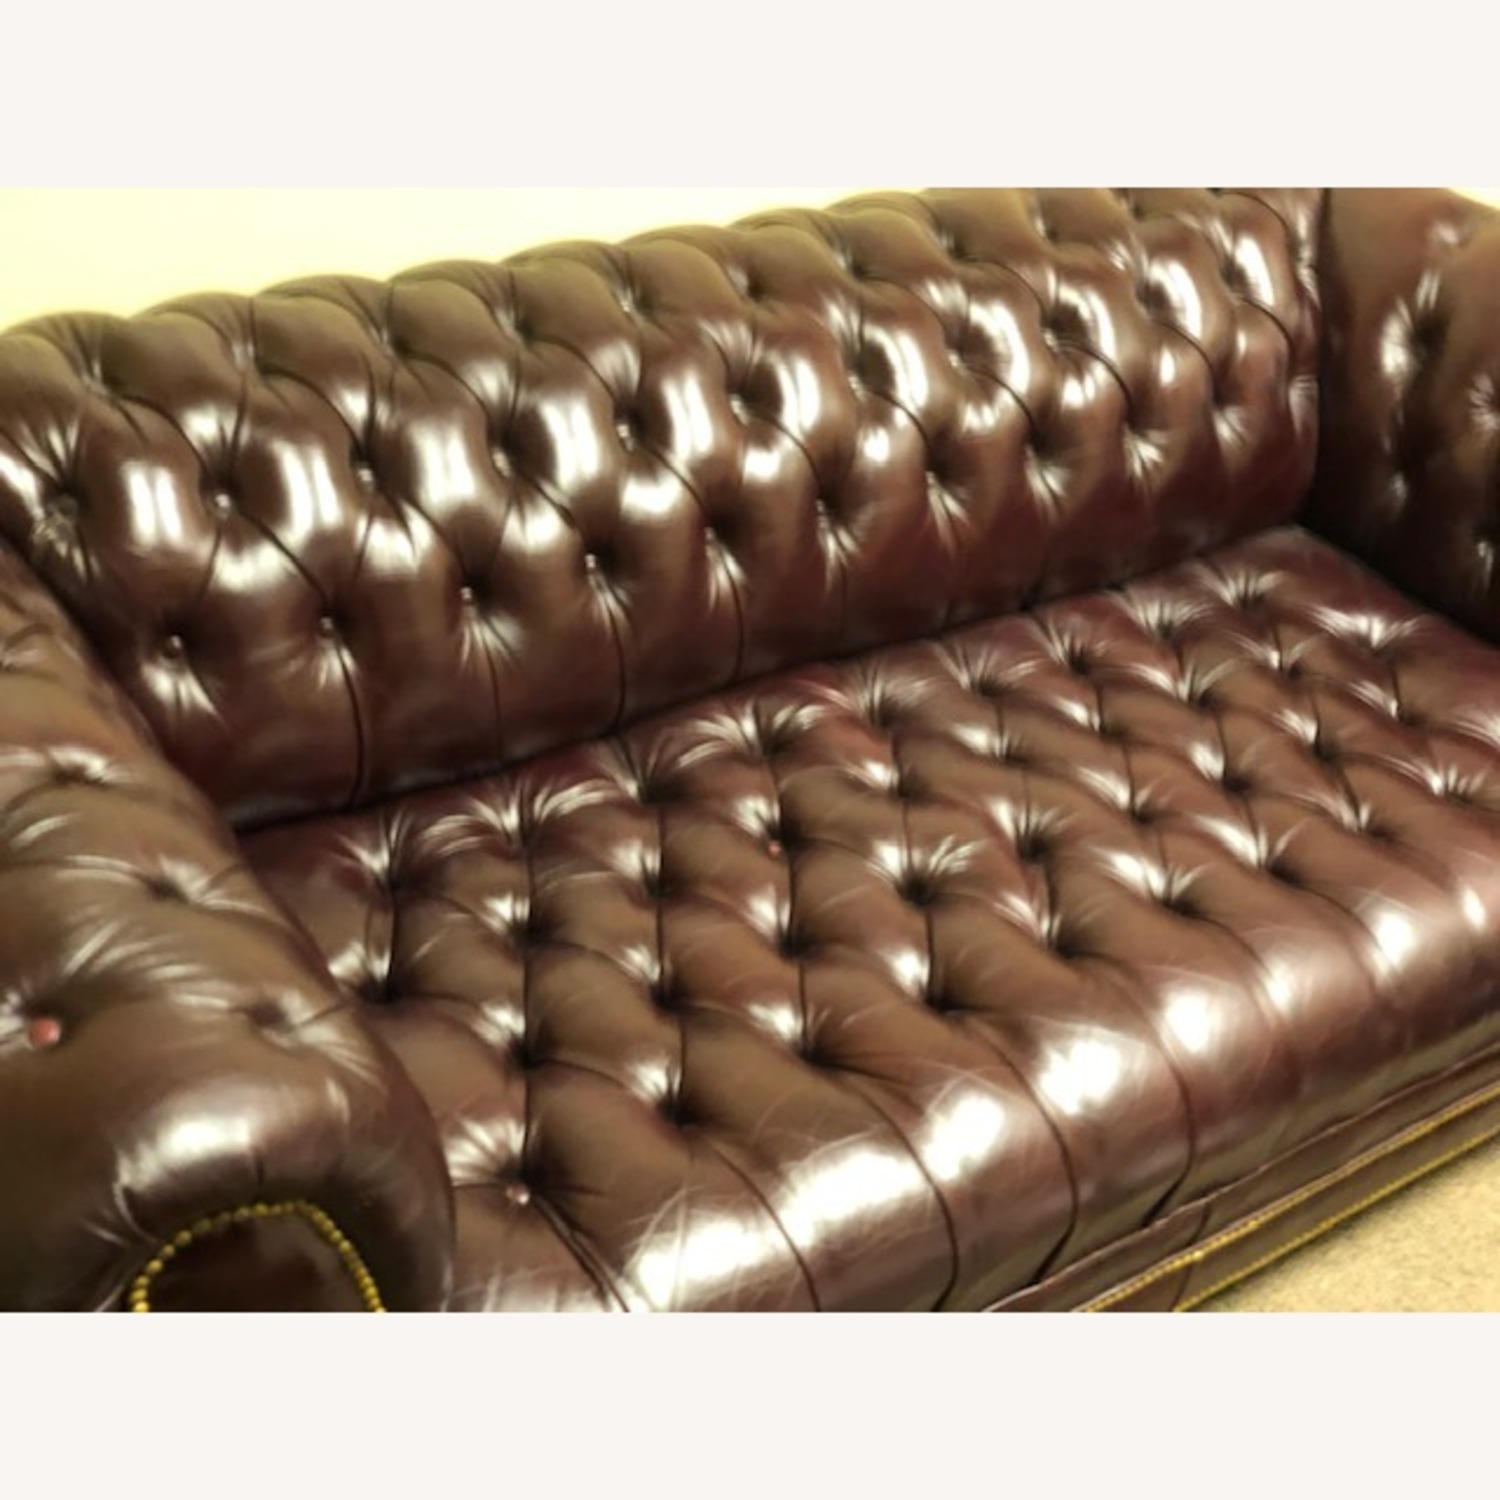 Genuine Tufted Leather Sofa W Bronze Nail Heads - image-5